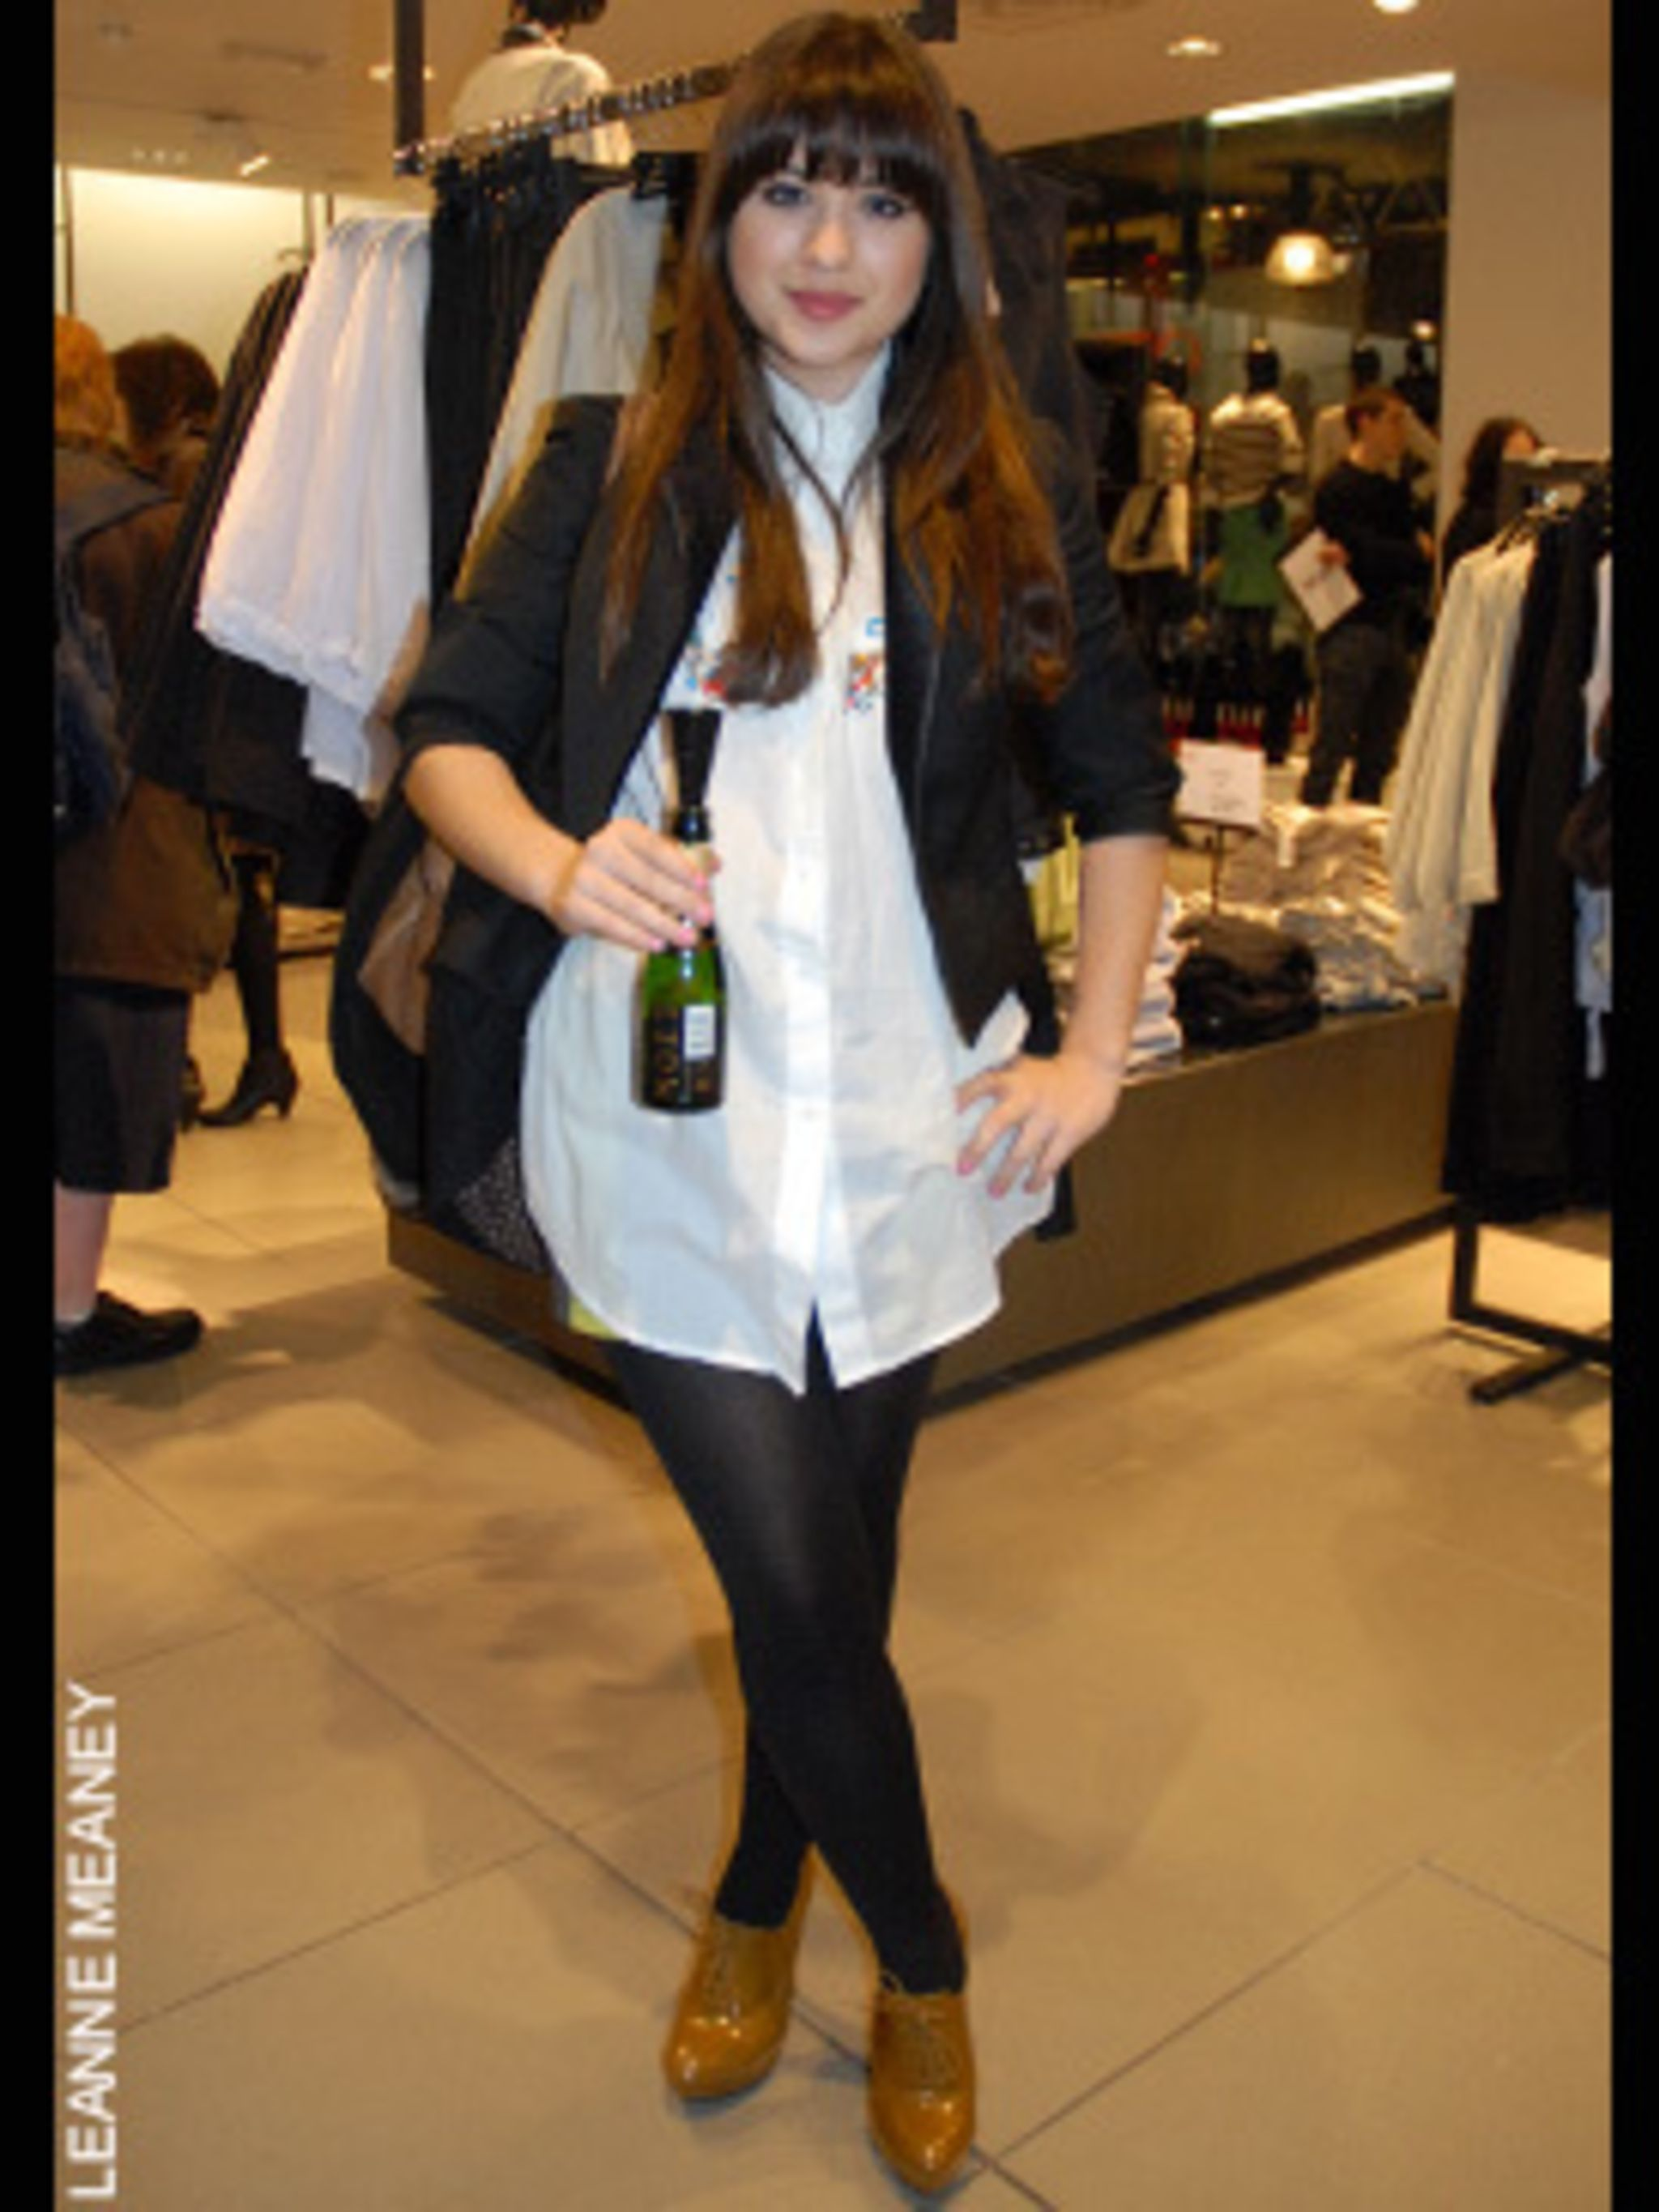 <p><strong>Jess, 22, from London</strong><strong>Fashion Buyer</strong><strong>Style icon - Alexa Chung and the Olsen twins</strong>Jacket - Todd Lynn for TopshopShirt - TokyoShoes - River Island</p>